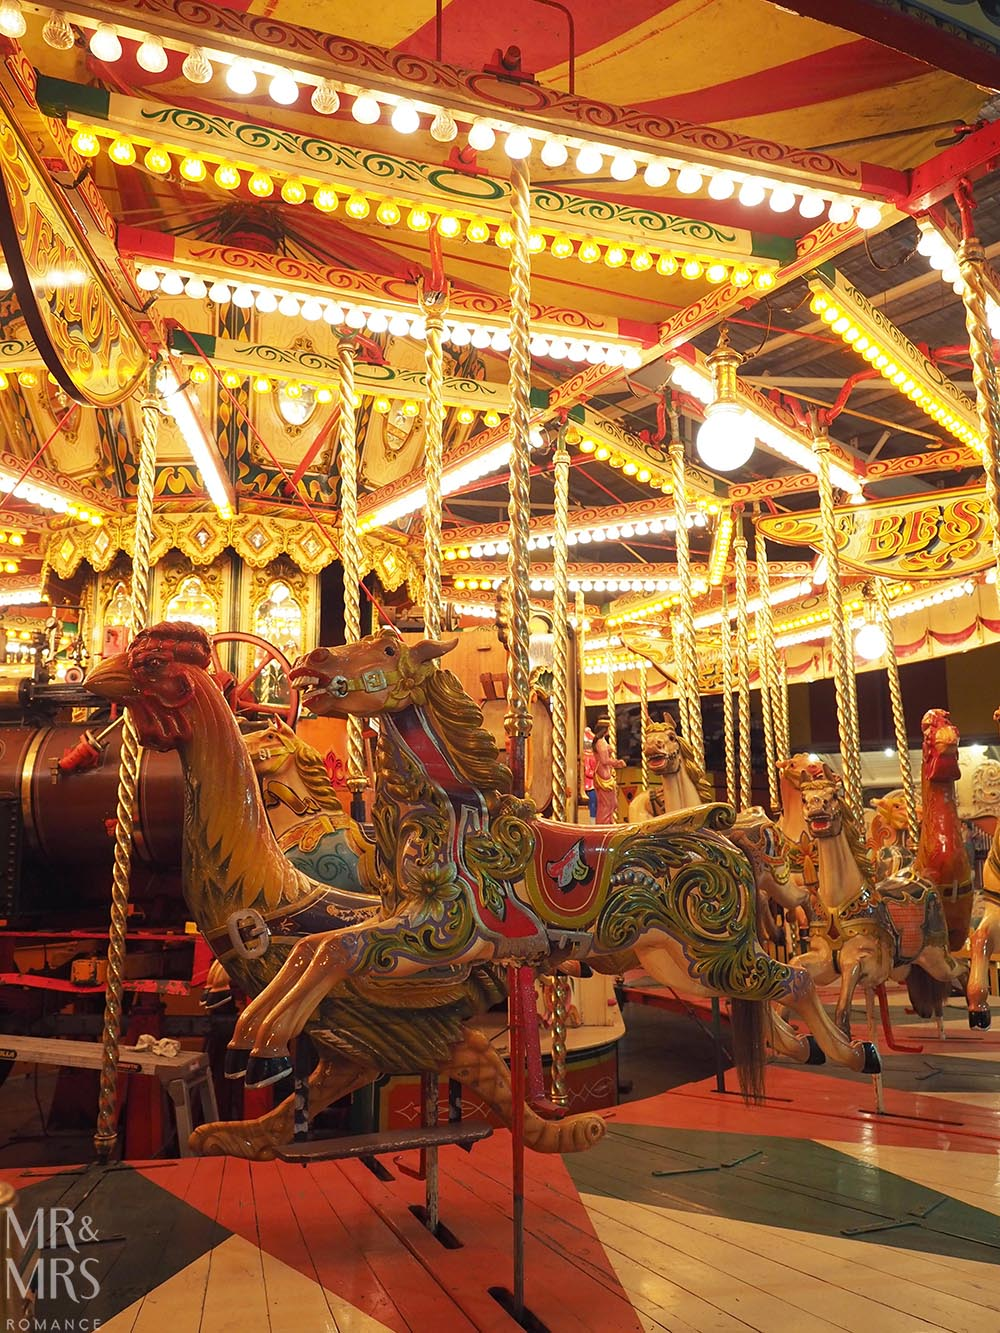 Pie Time Southern Highlands NSW - Fairground Follies carousel